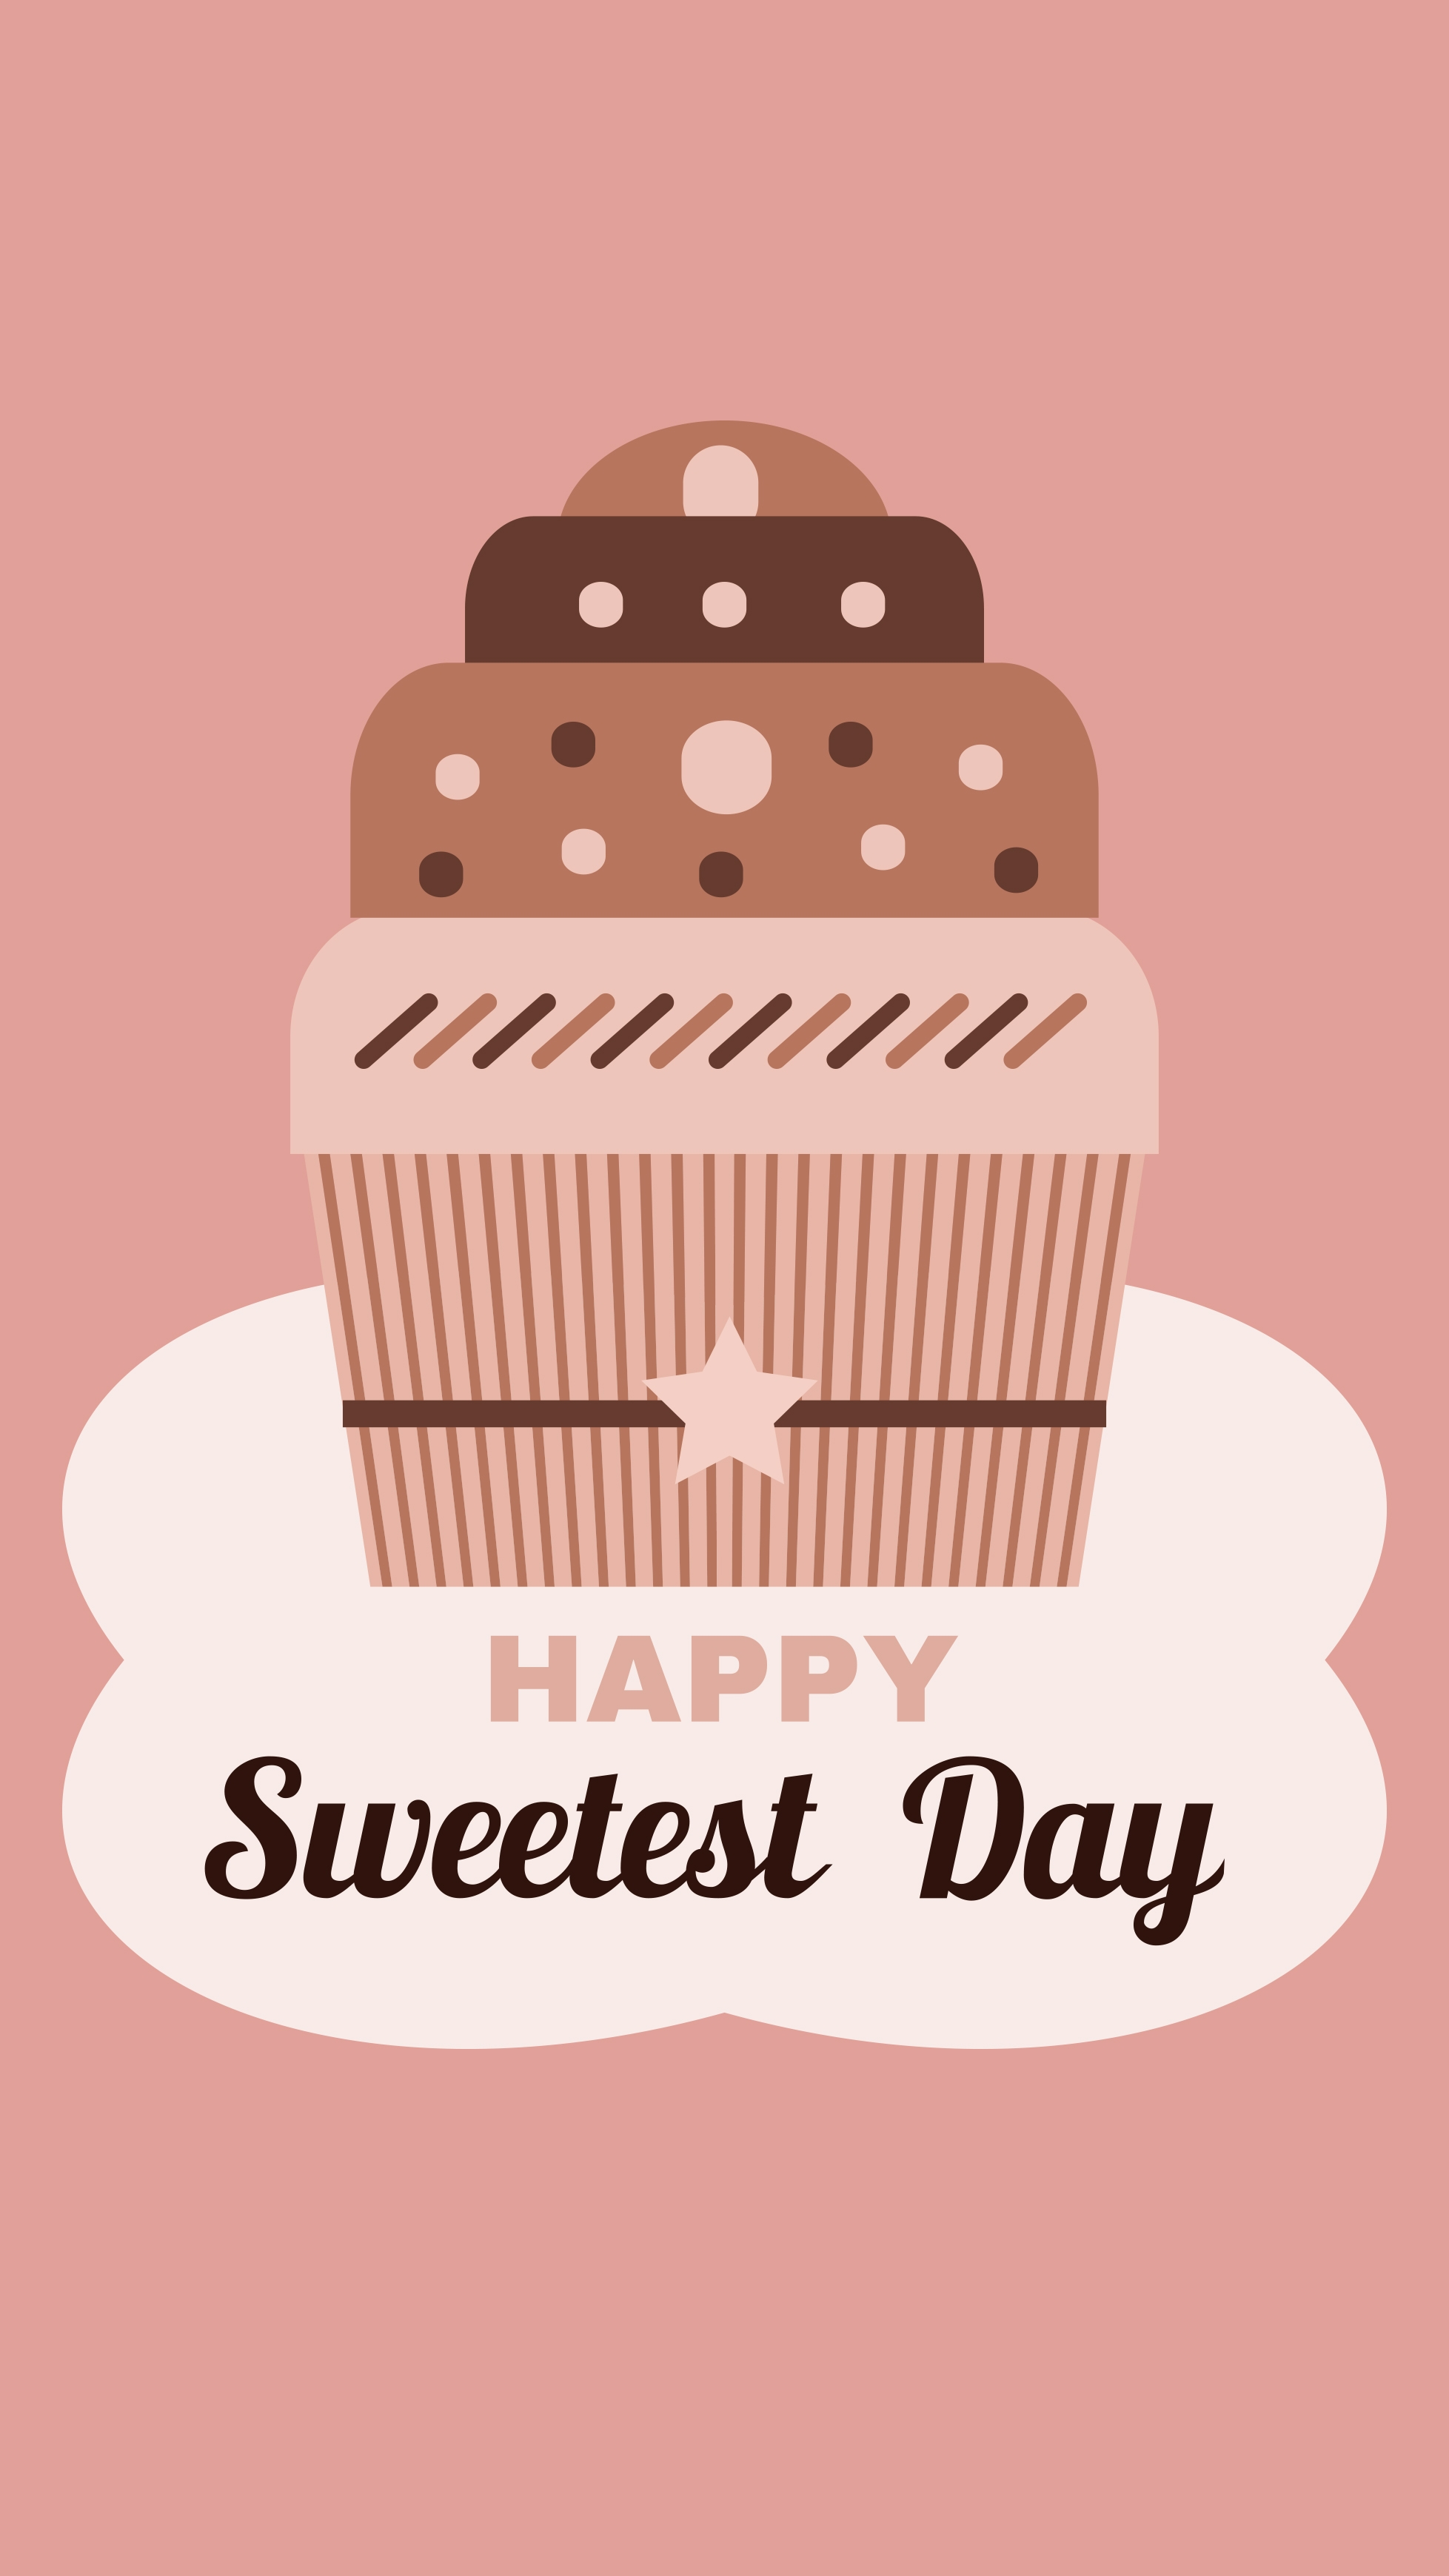 Sweetest Day 4